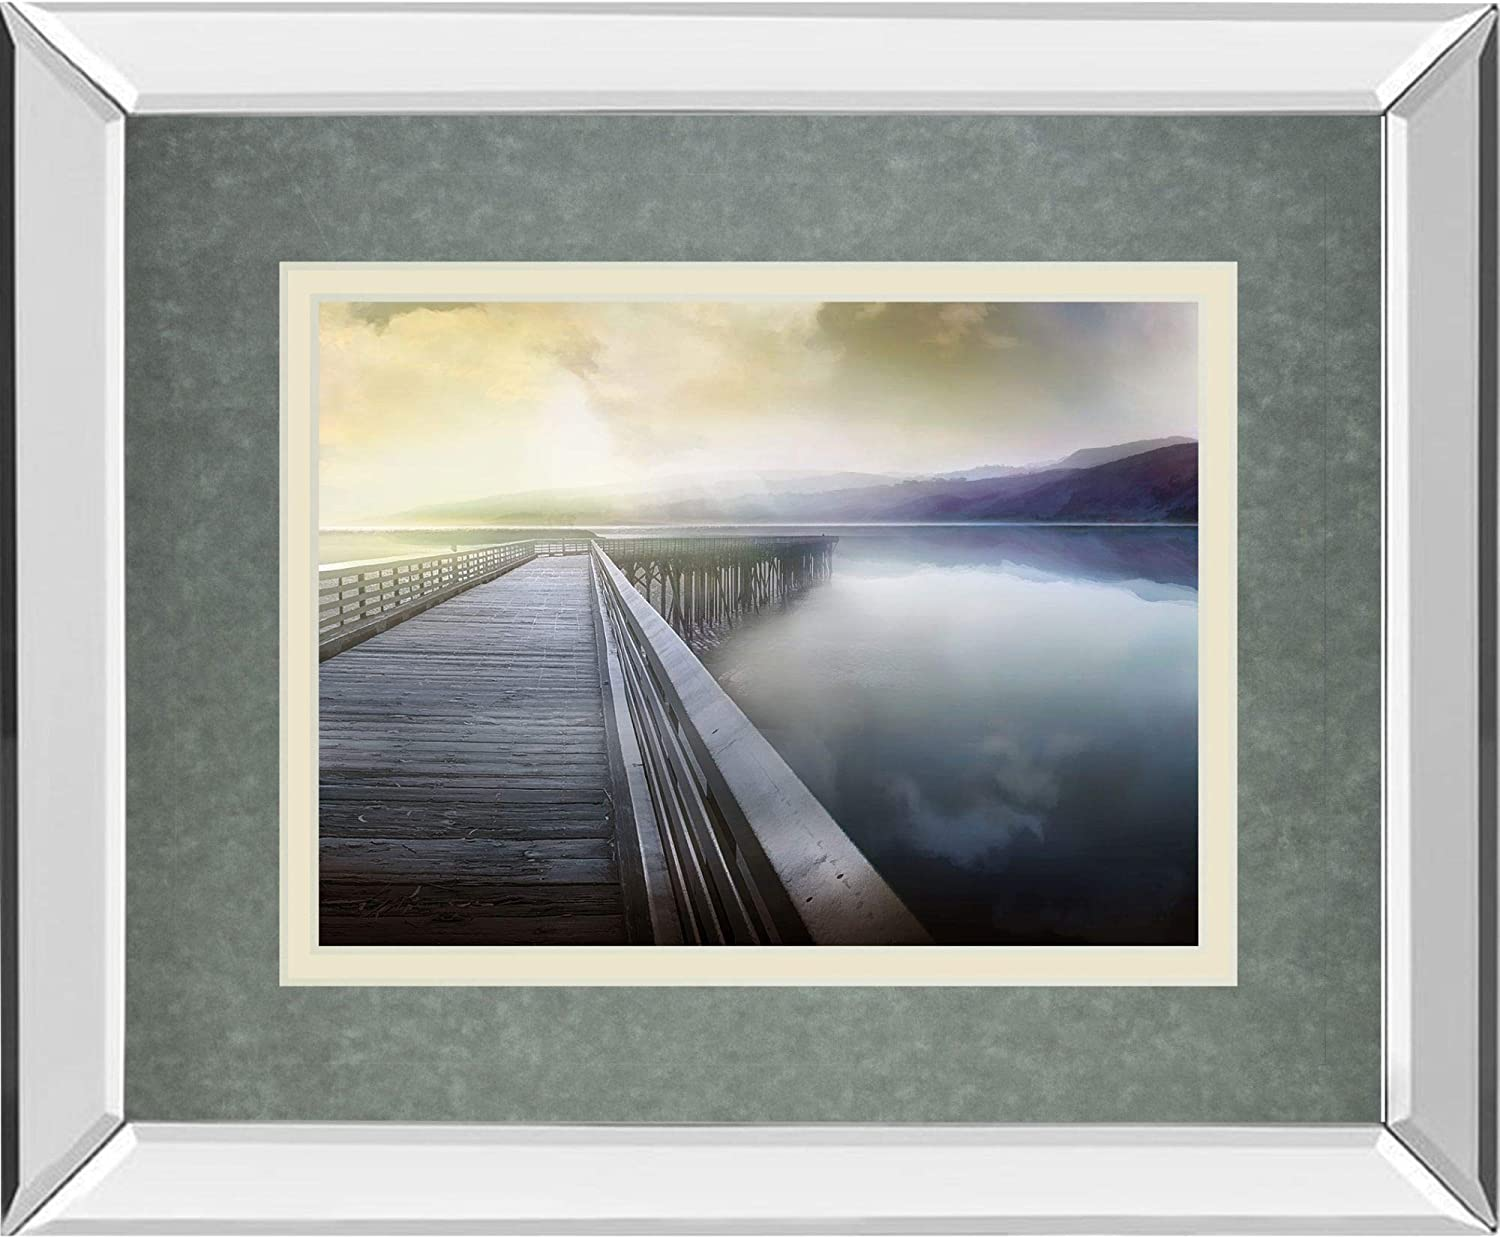 Contemporary Home Living Hazy Morning Frame Wall High quality New product type Mirror Hang Art